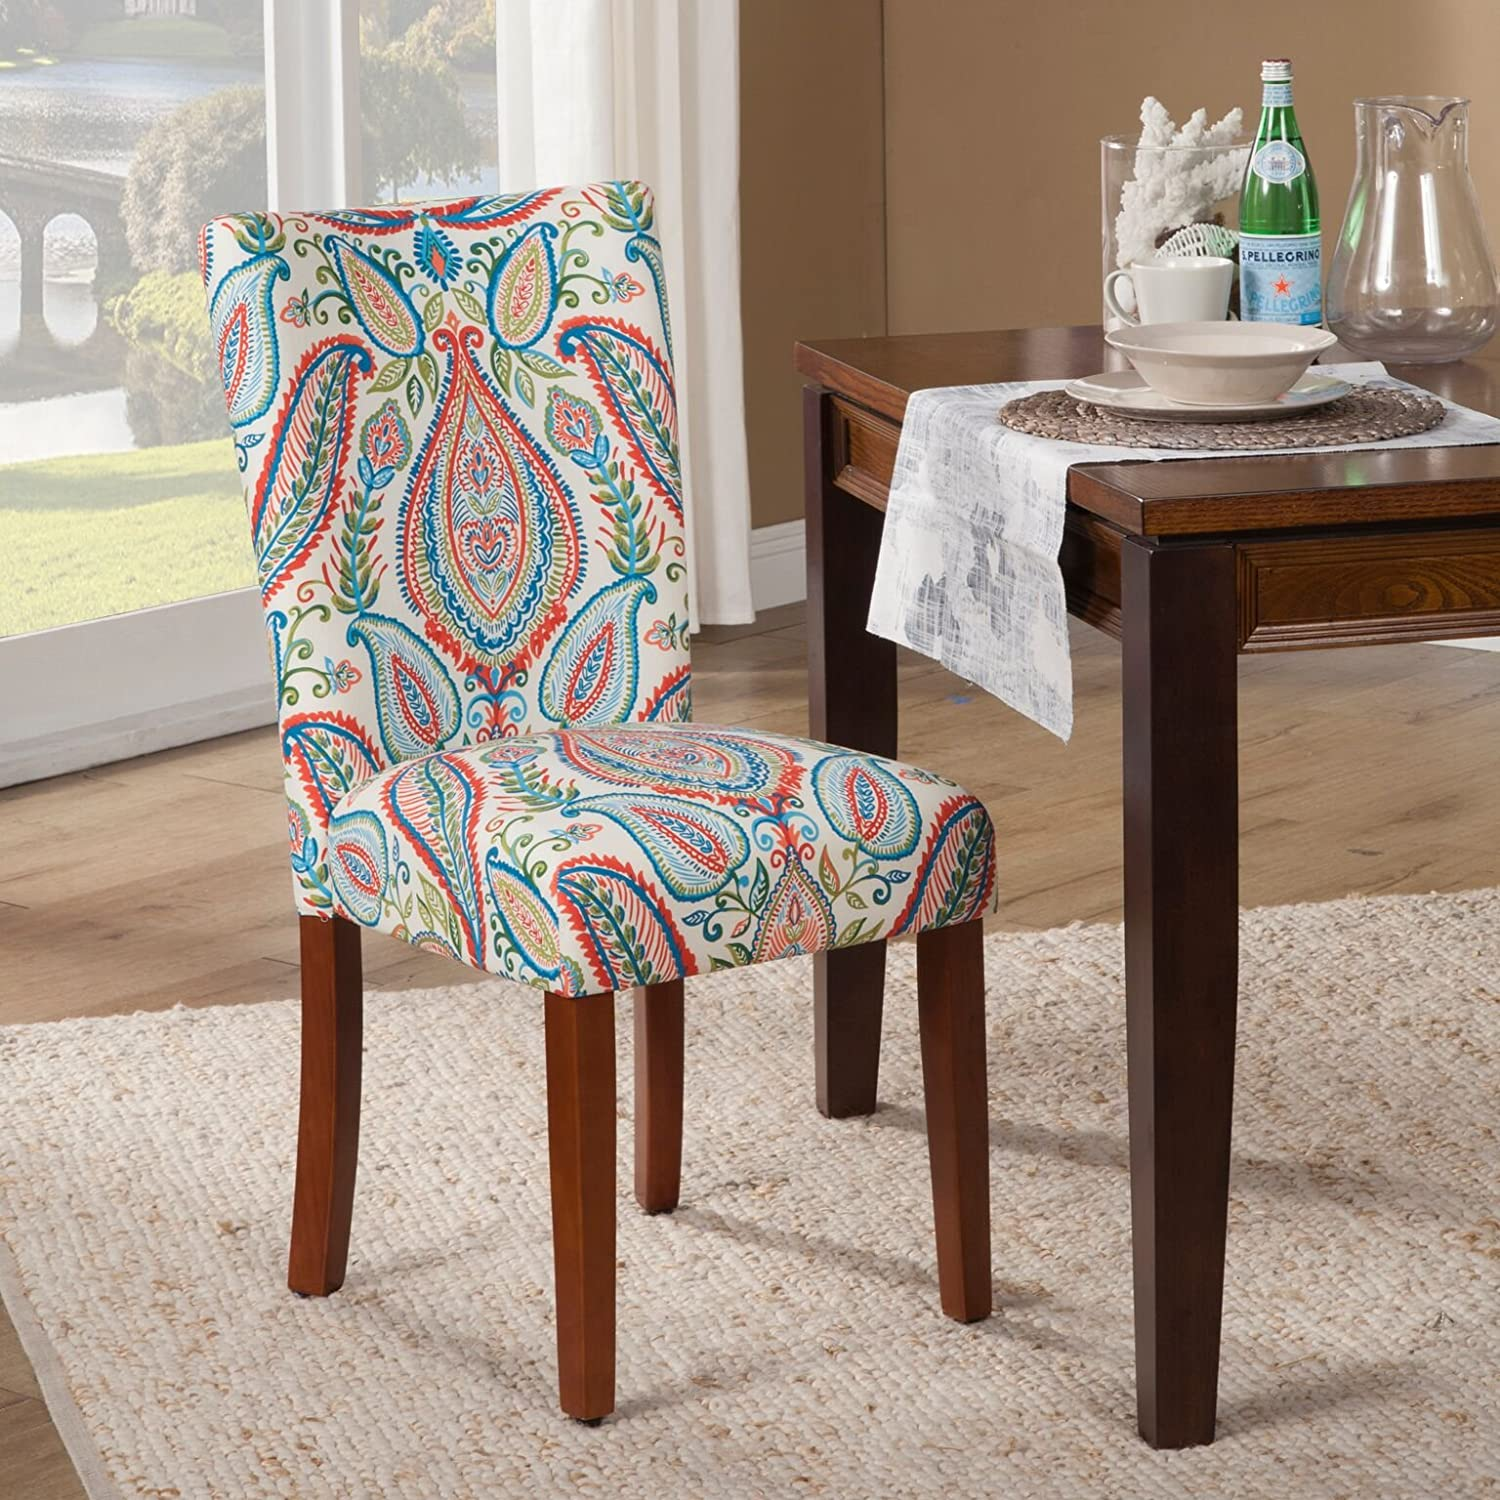 Kinfine Parsons Upholstered Accent Dining Chair, Set of 2, Colorful Paisley